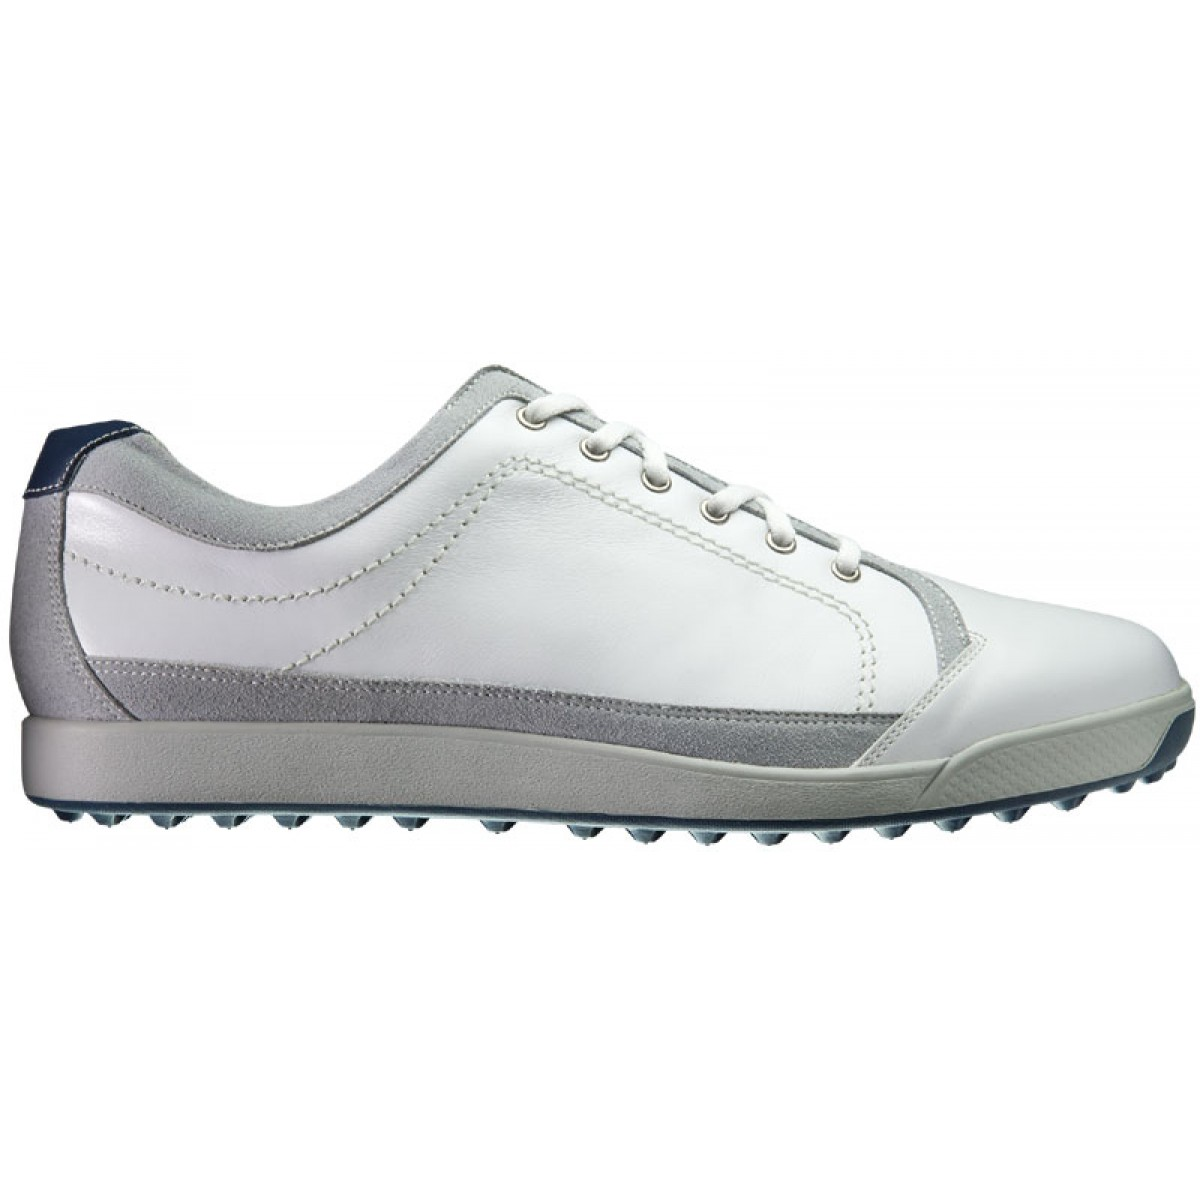 Footjoy Spikeless Mens Golf Shoes